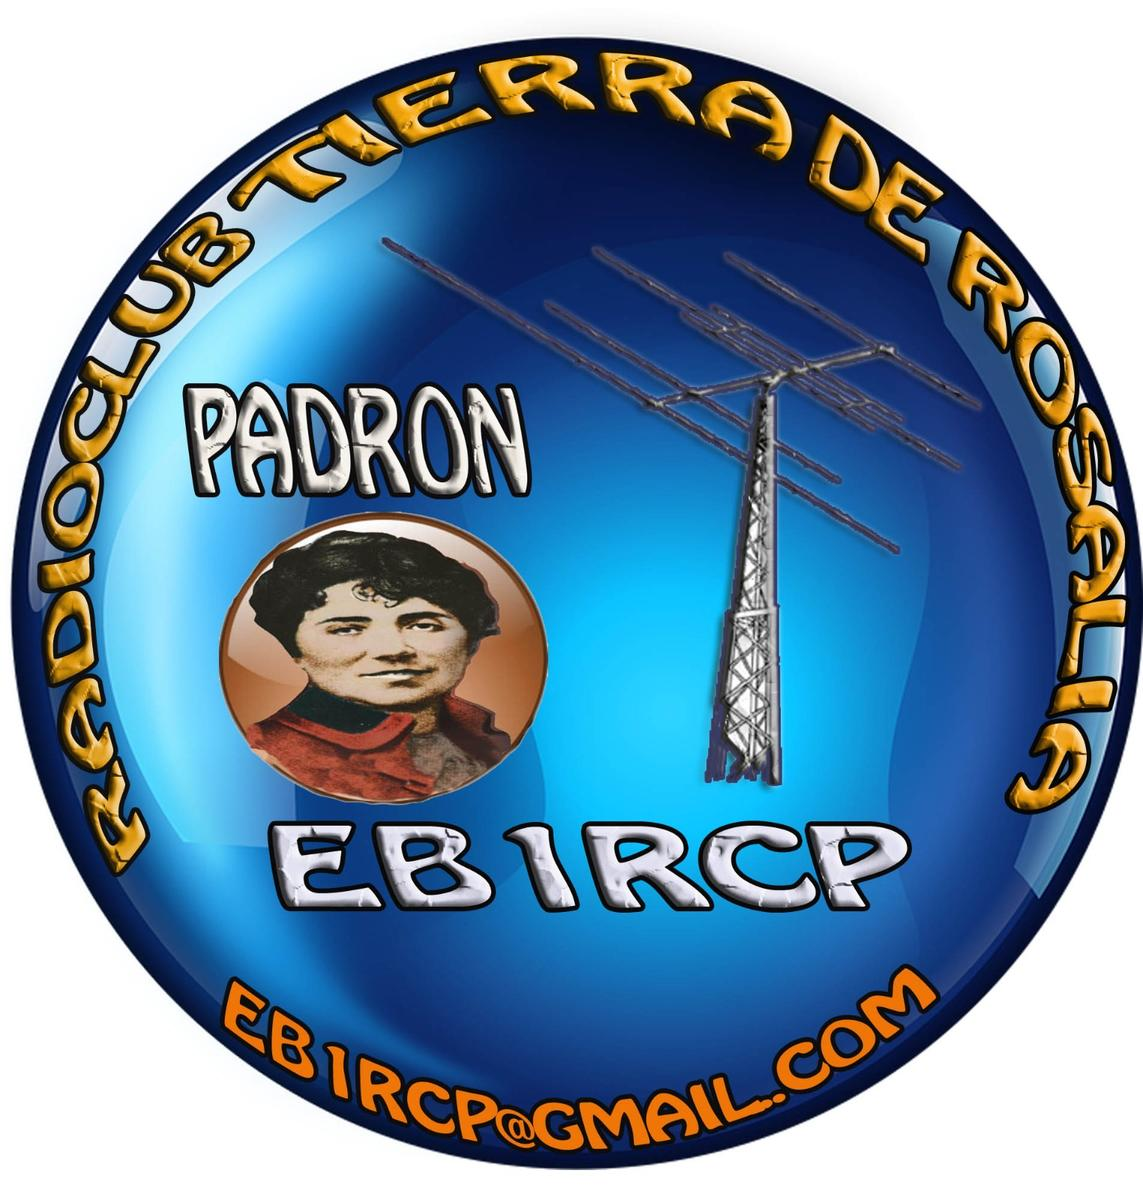 Primary Image for EB1RCP